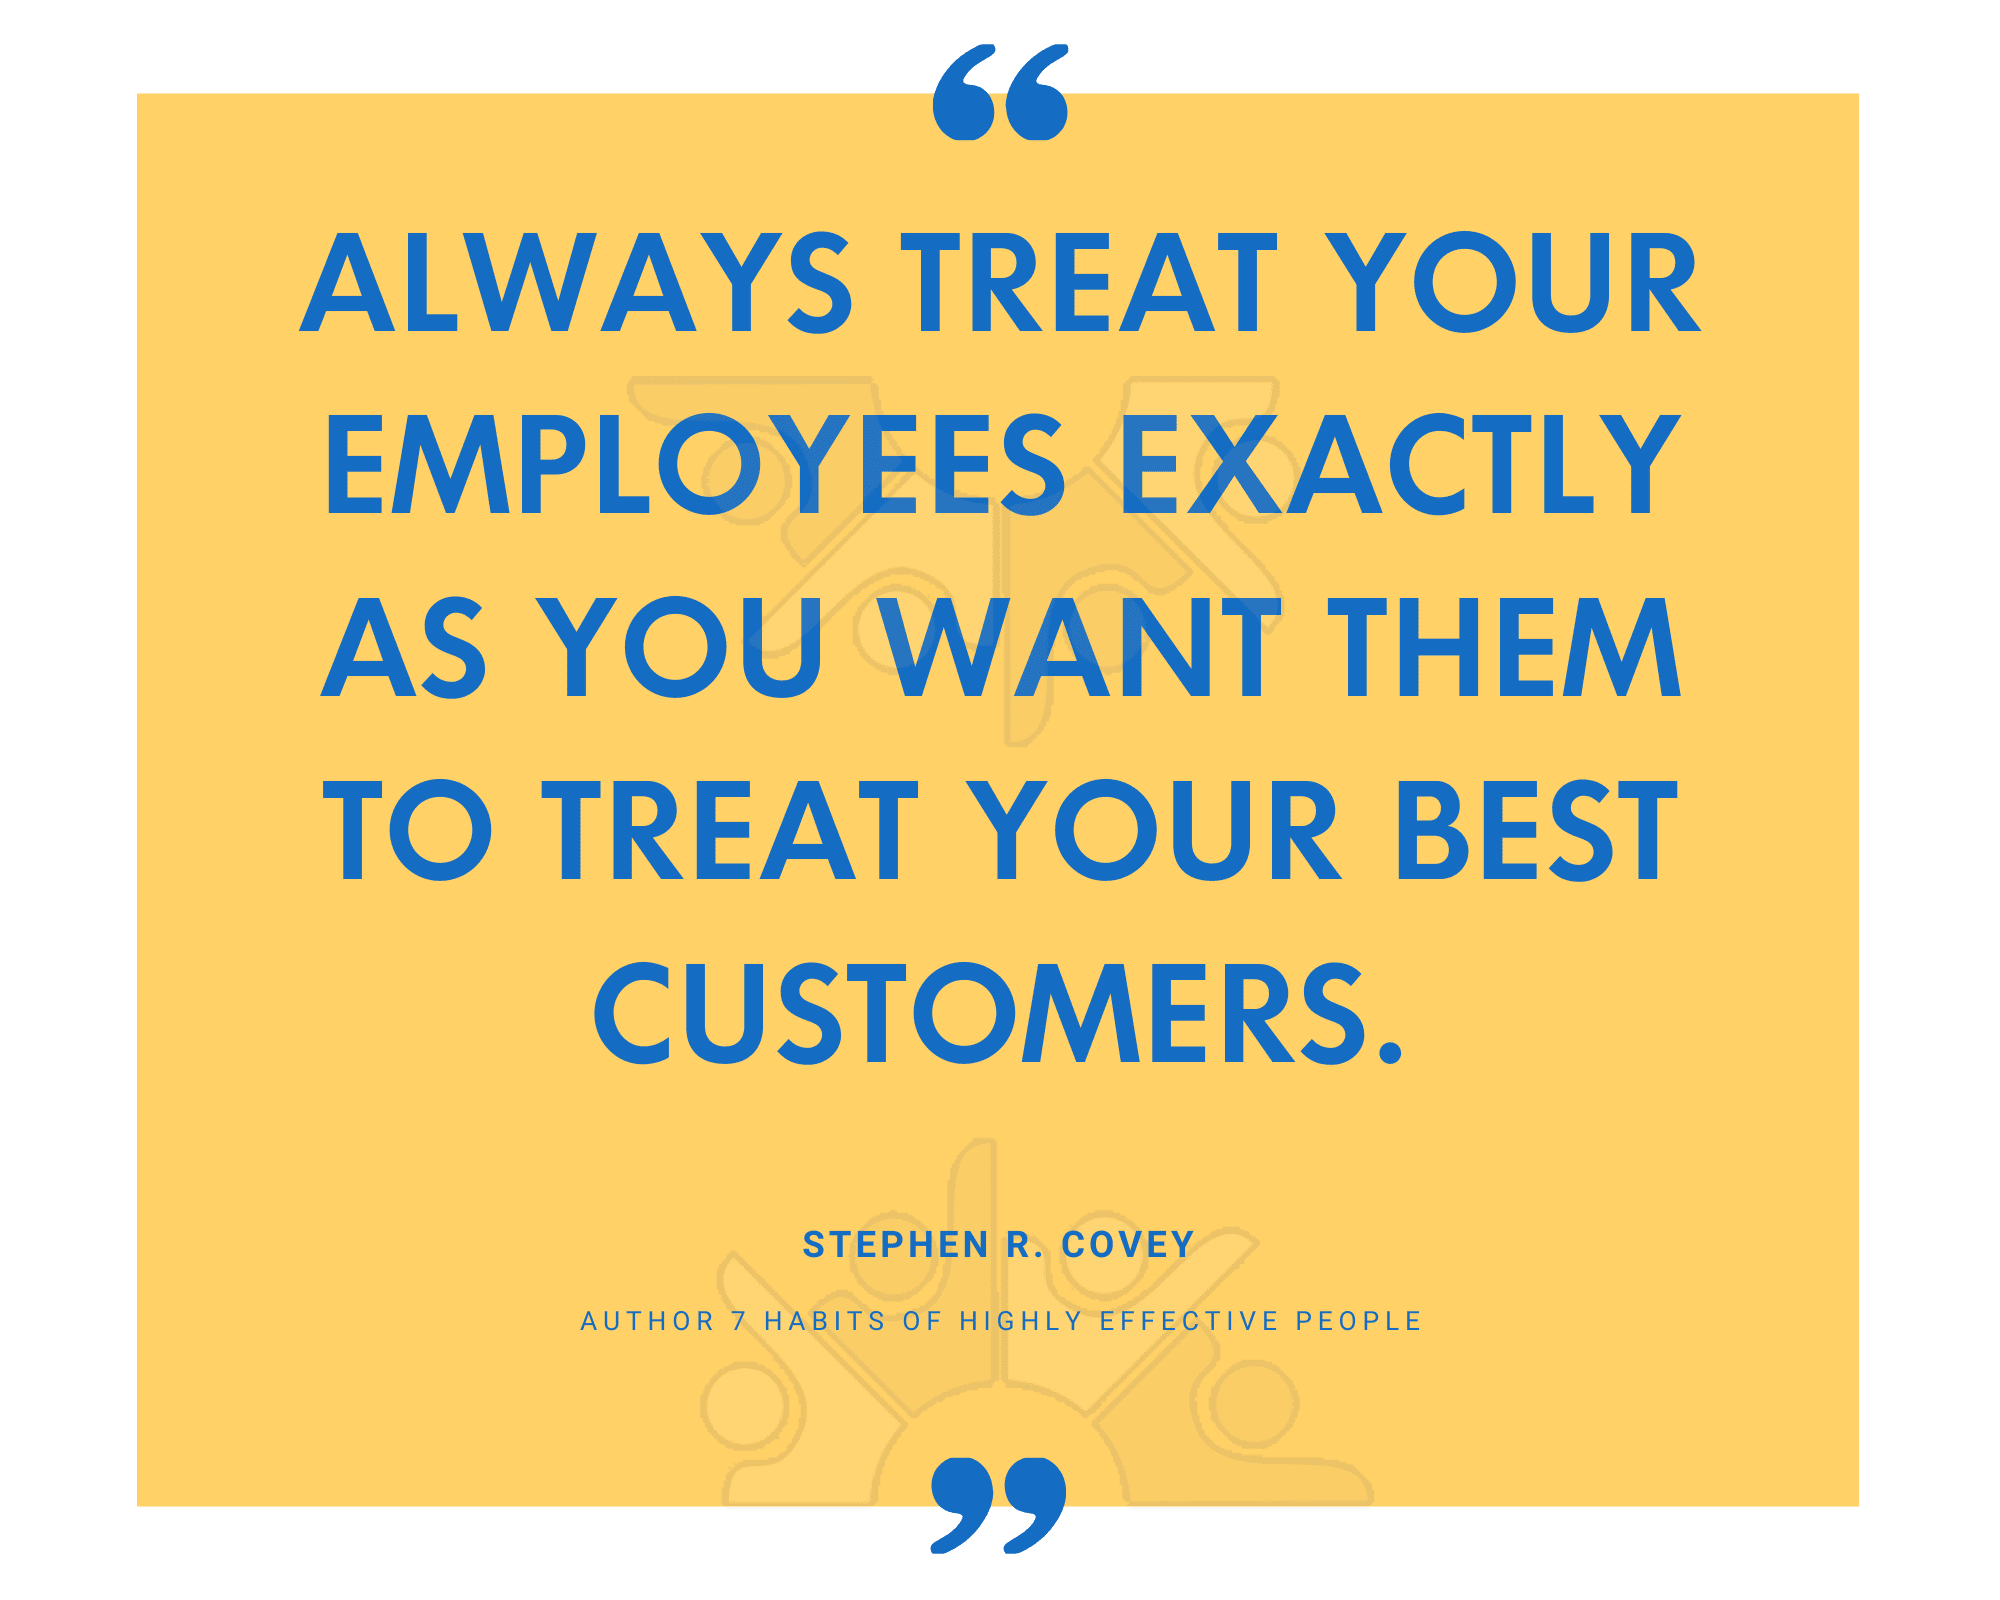 Always treat your employees exactly as you want them to treat your best customers.-1